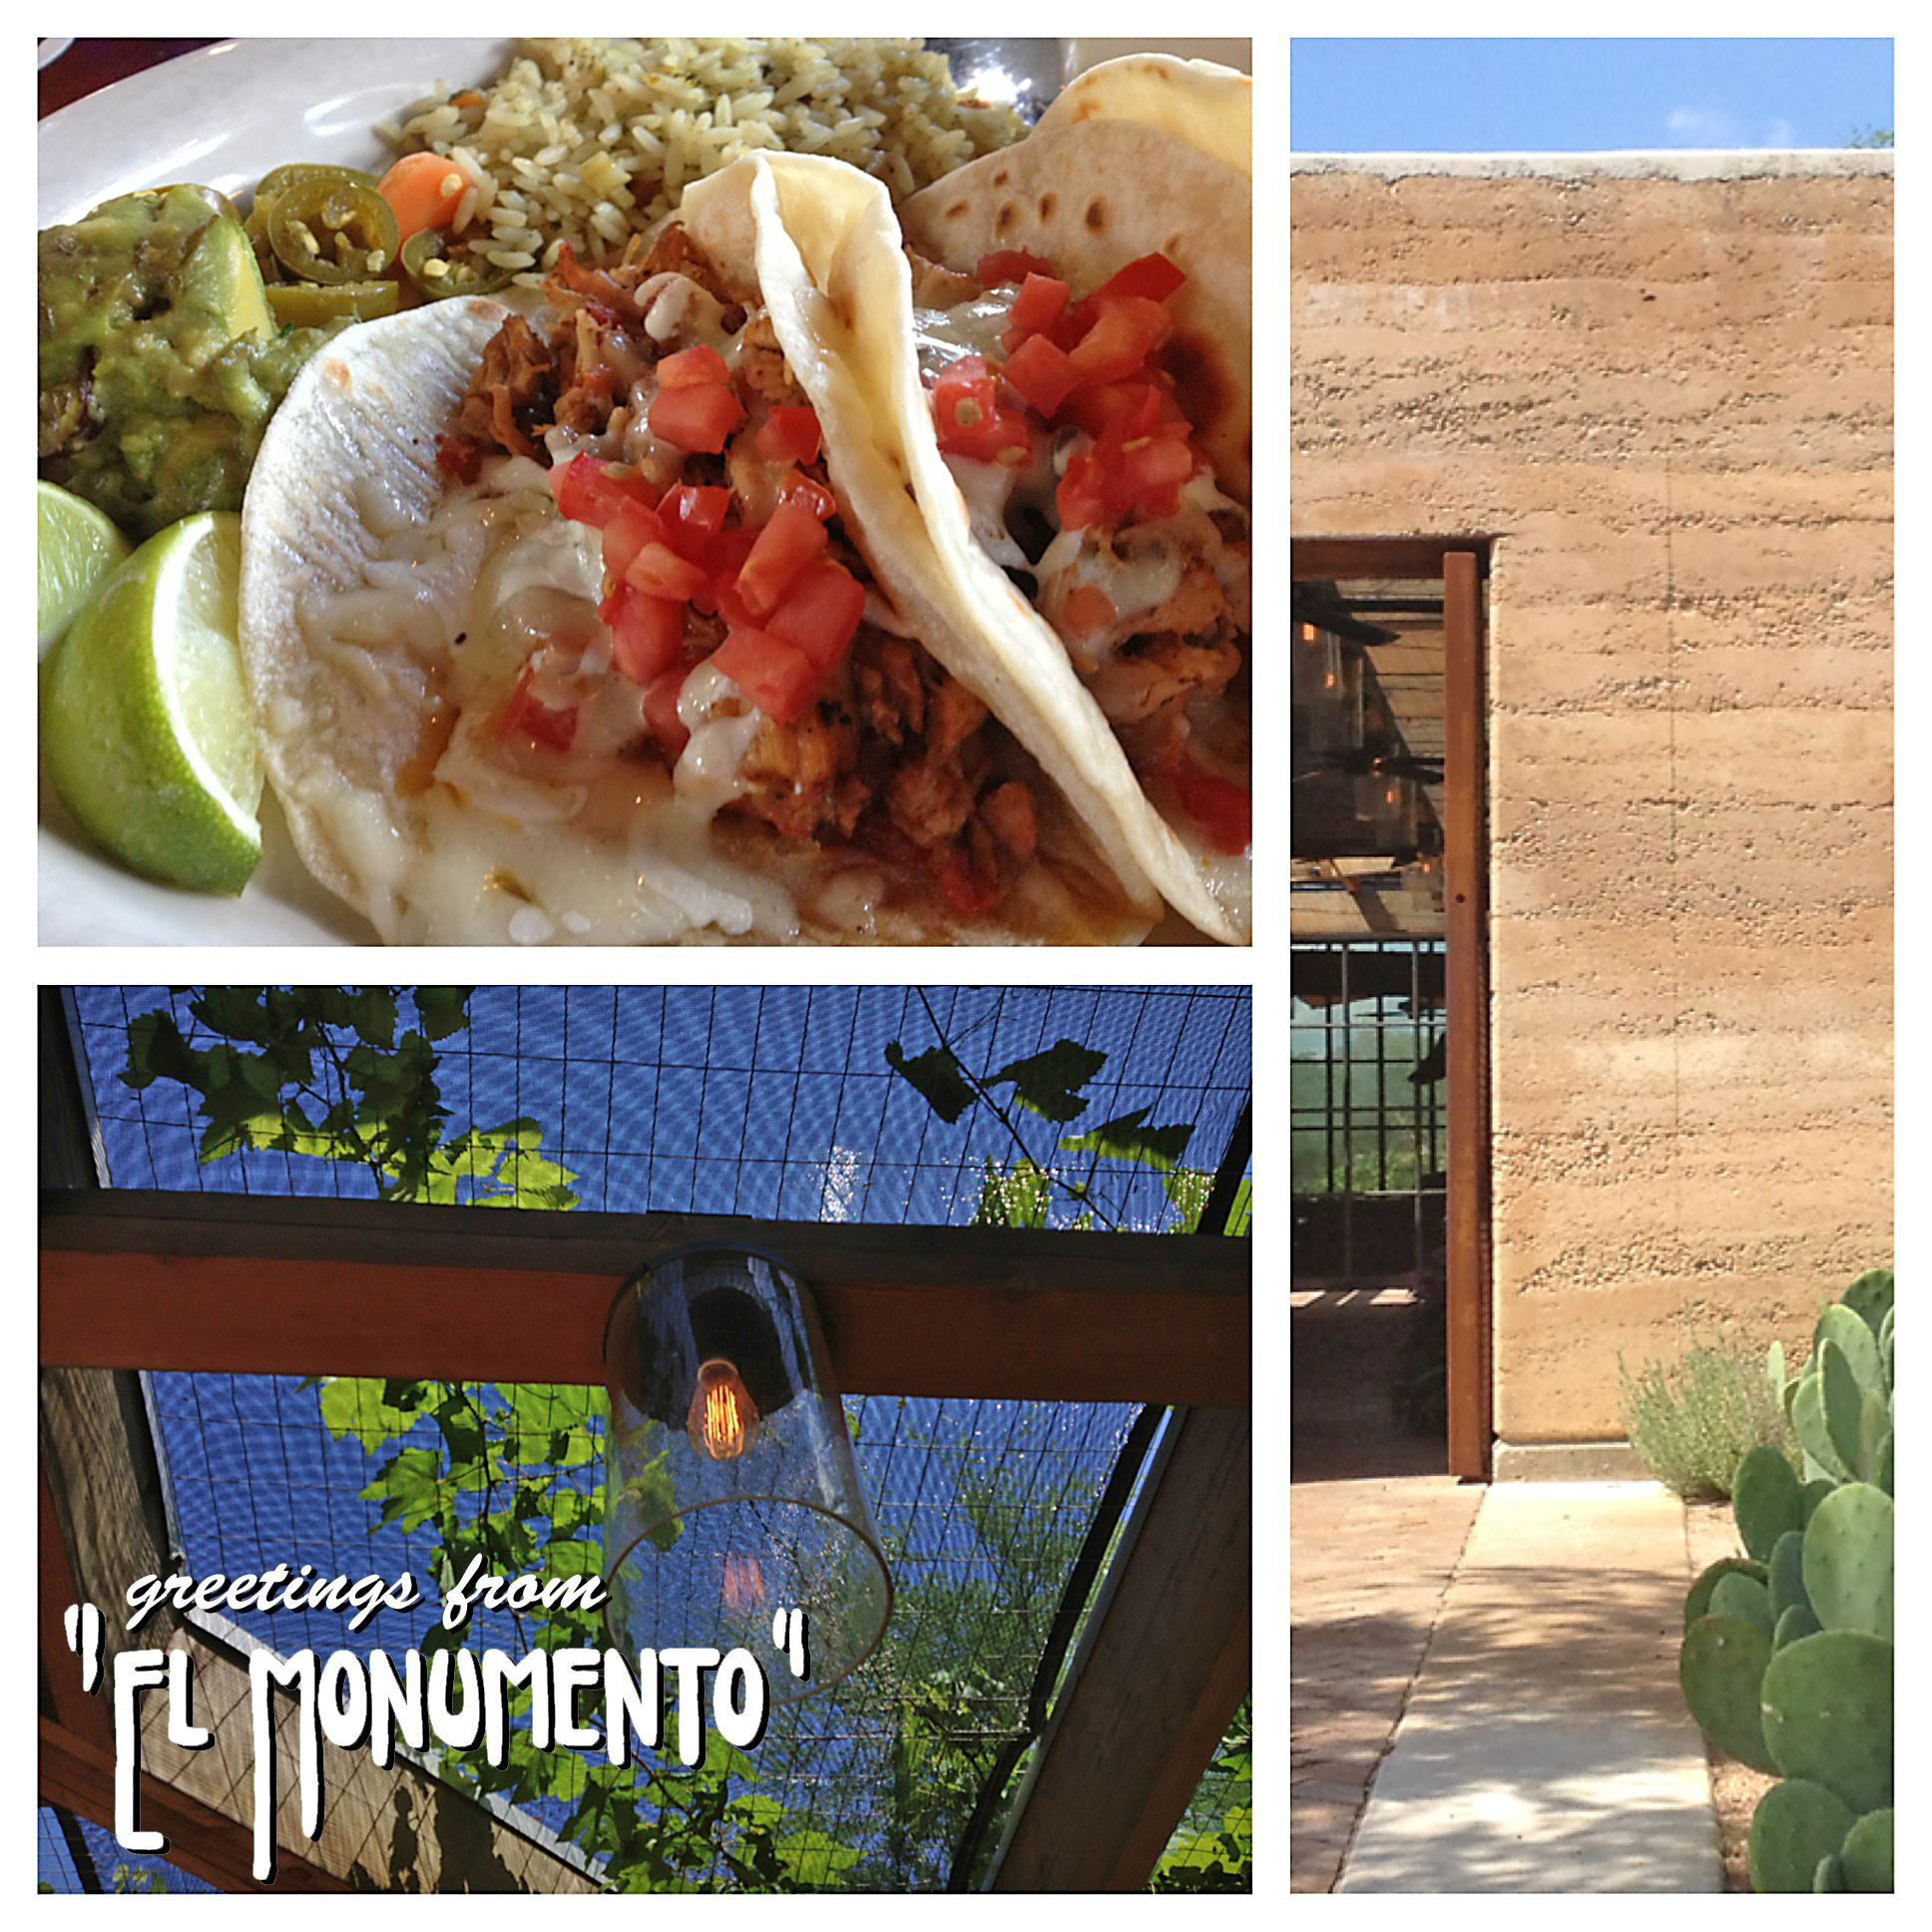 At the intersection of great ‪‎food‬, ‪‎design‬ and ‪‎landscape‬, you'll find El Monumento. Our crew had a great lunch there yesterday. Our faves were the crispy pork carnitas and $5 margaritas!